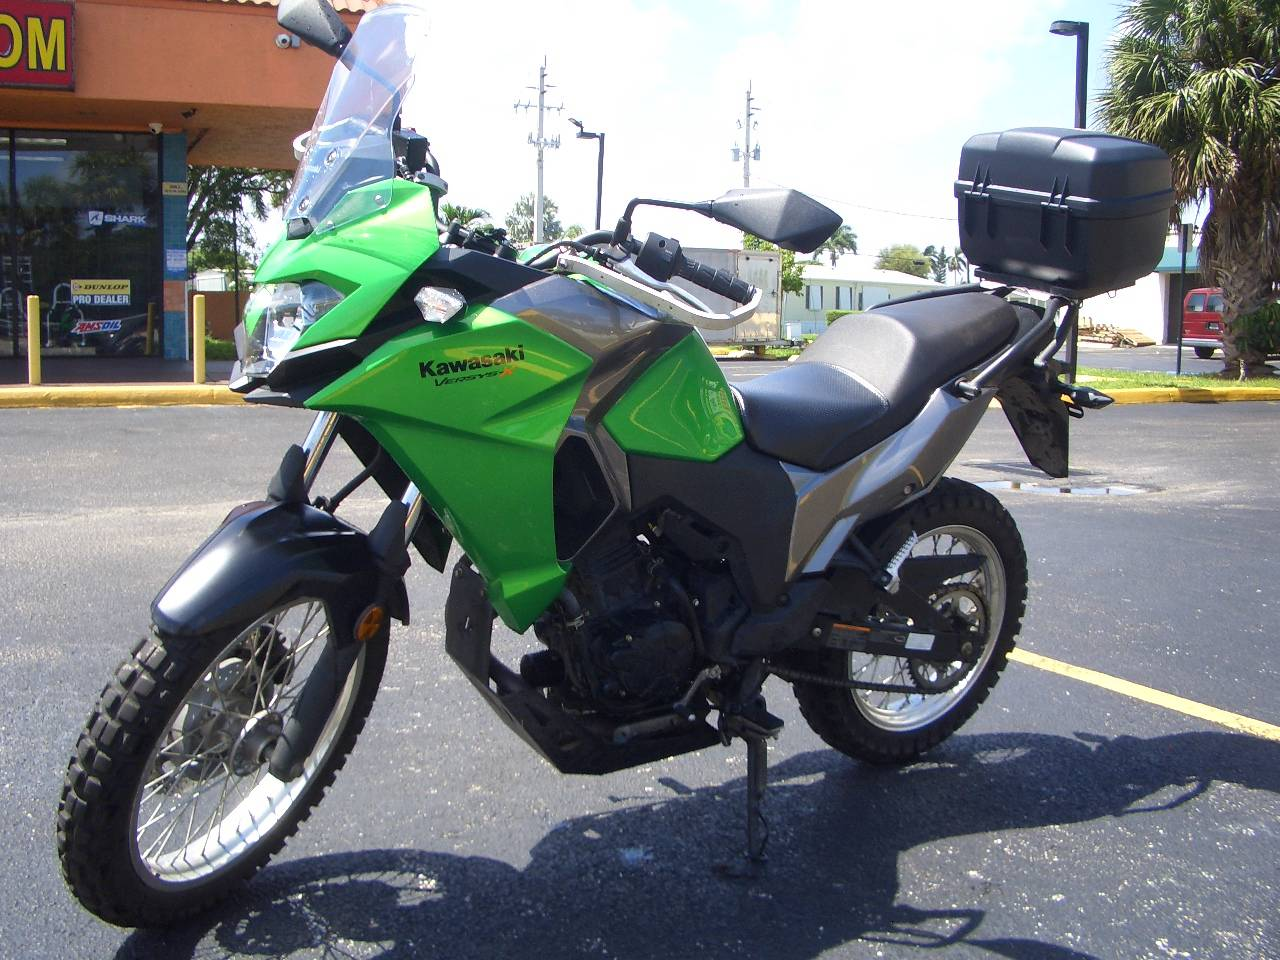 2017 Kawasaki Versys-X 300 in Fort Lauderdale, Florida - Photo 2